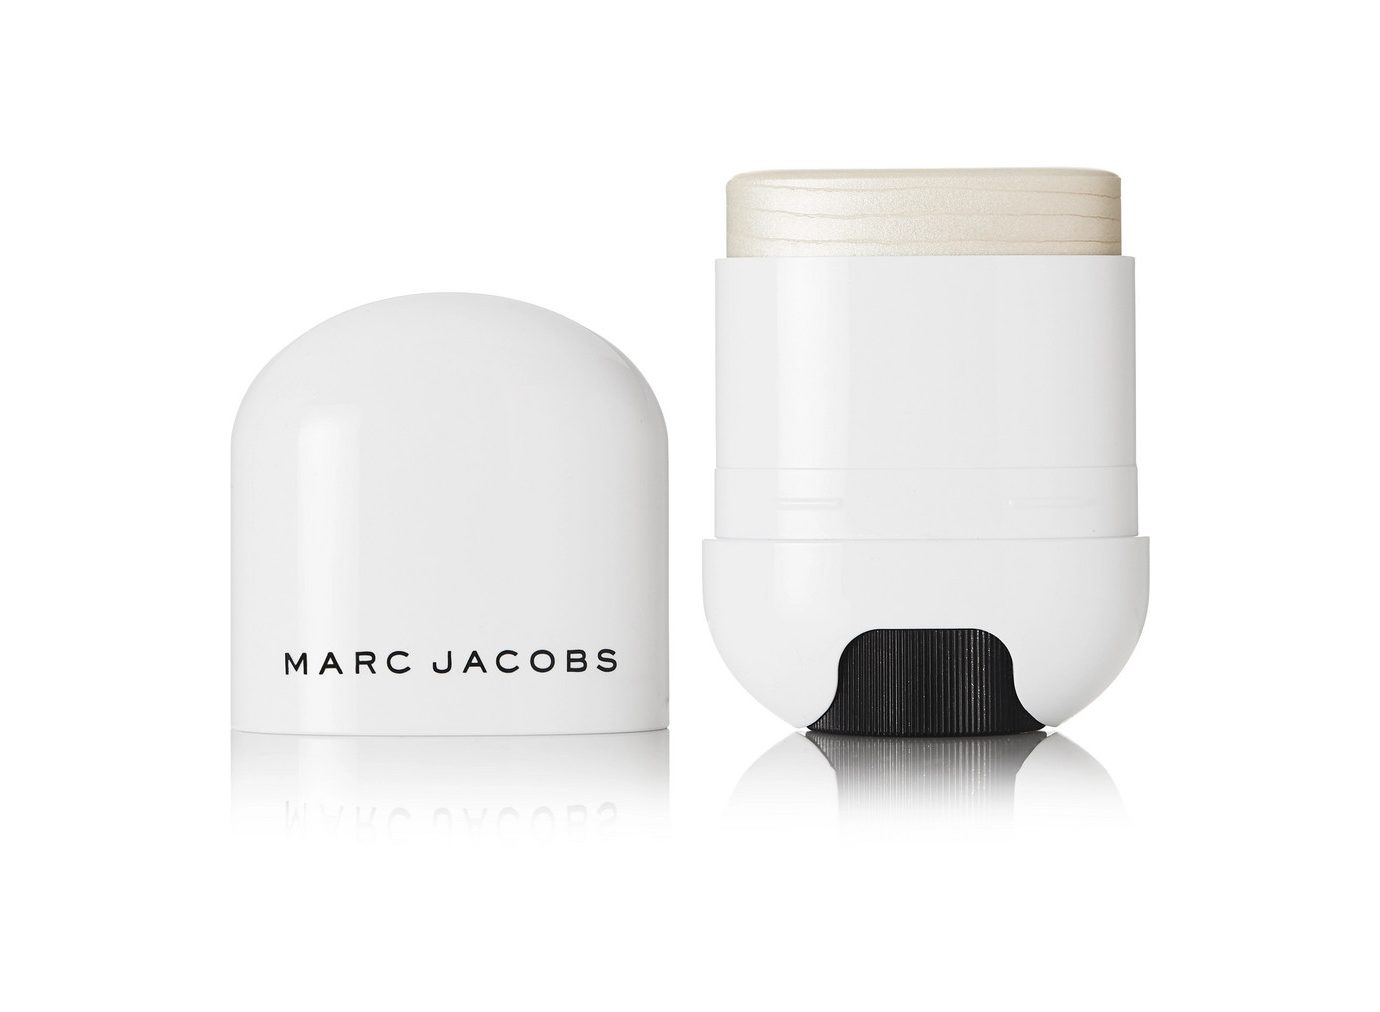 Summer Glow product Marc Jacobs Beauty Glow Stick Glistening Illuminator